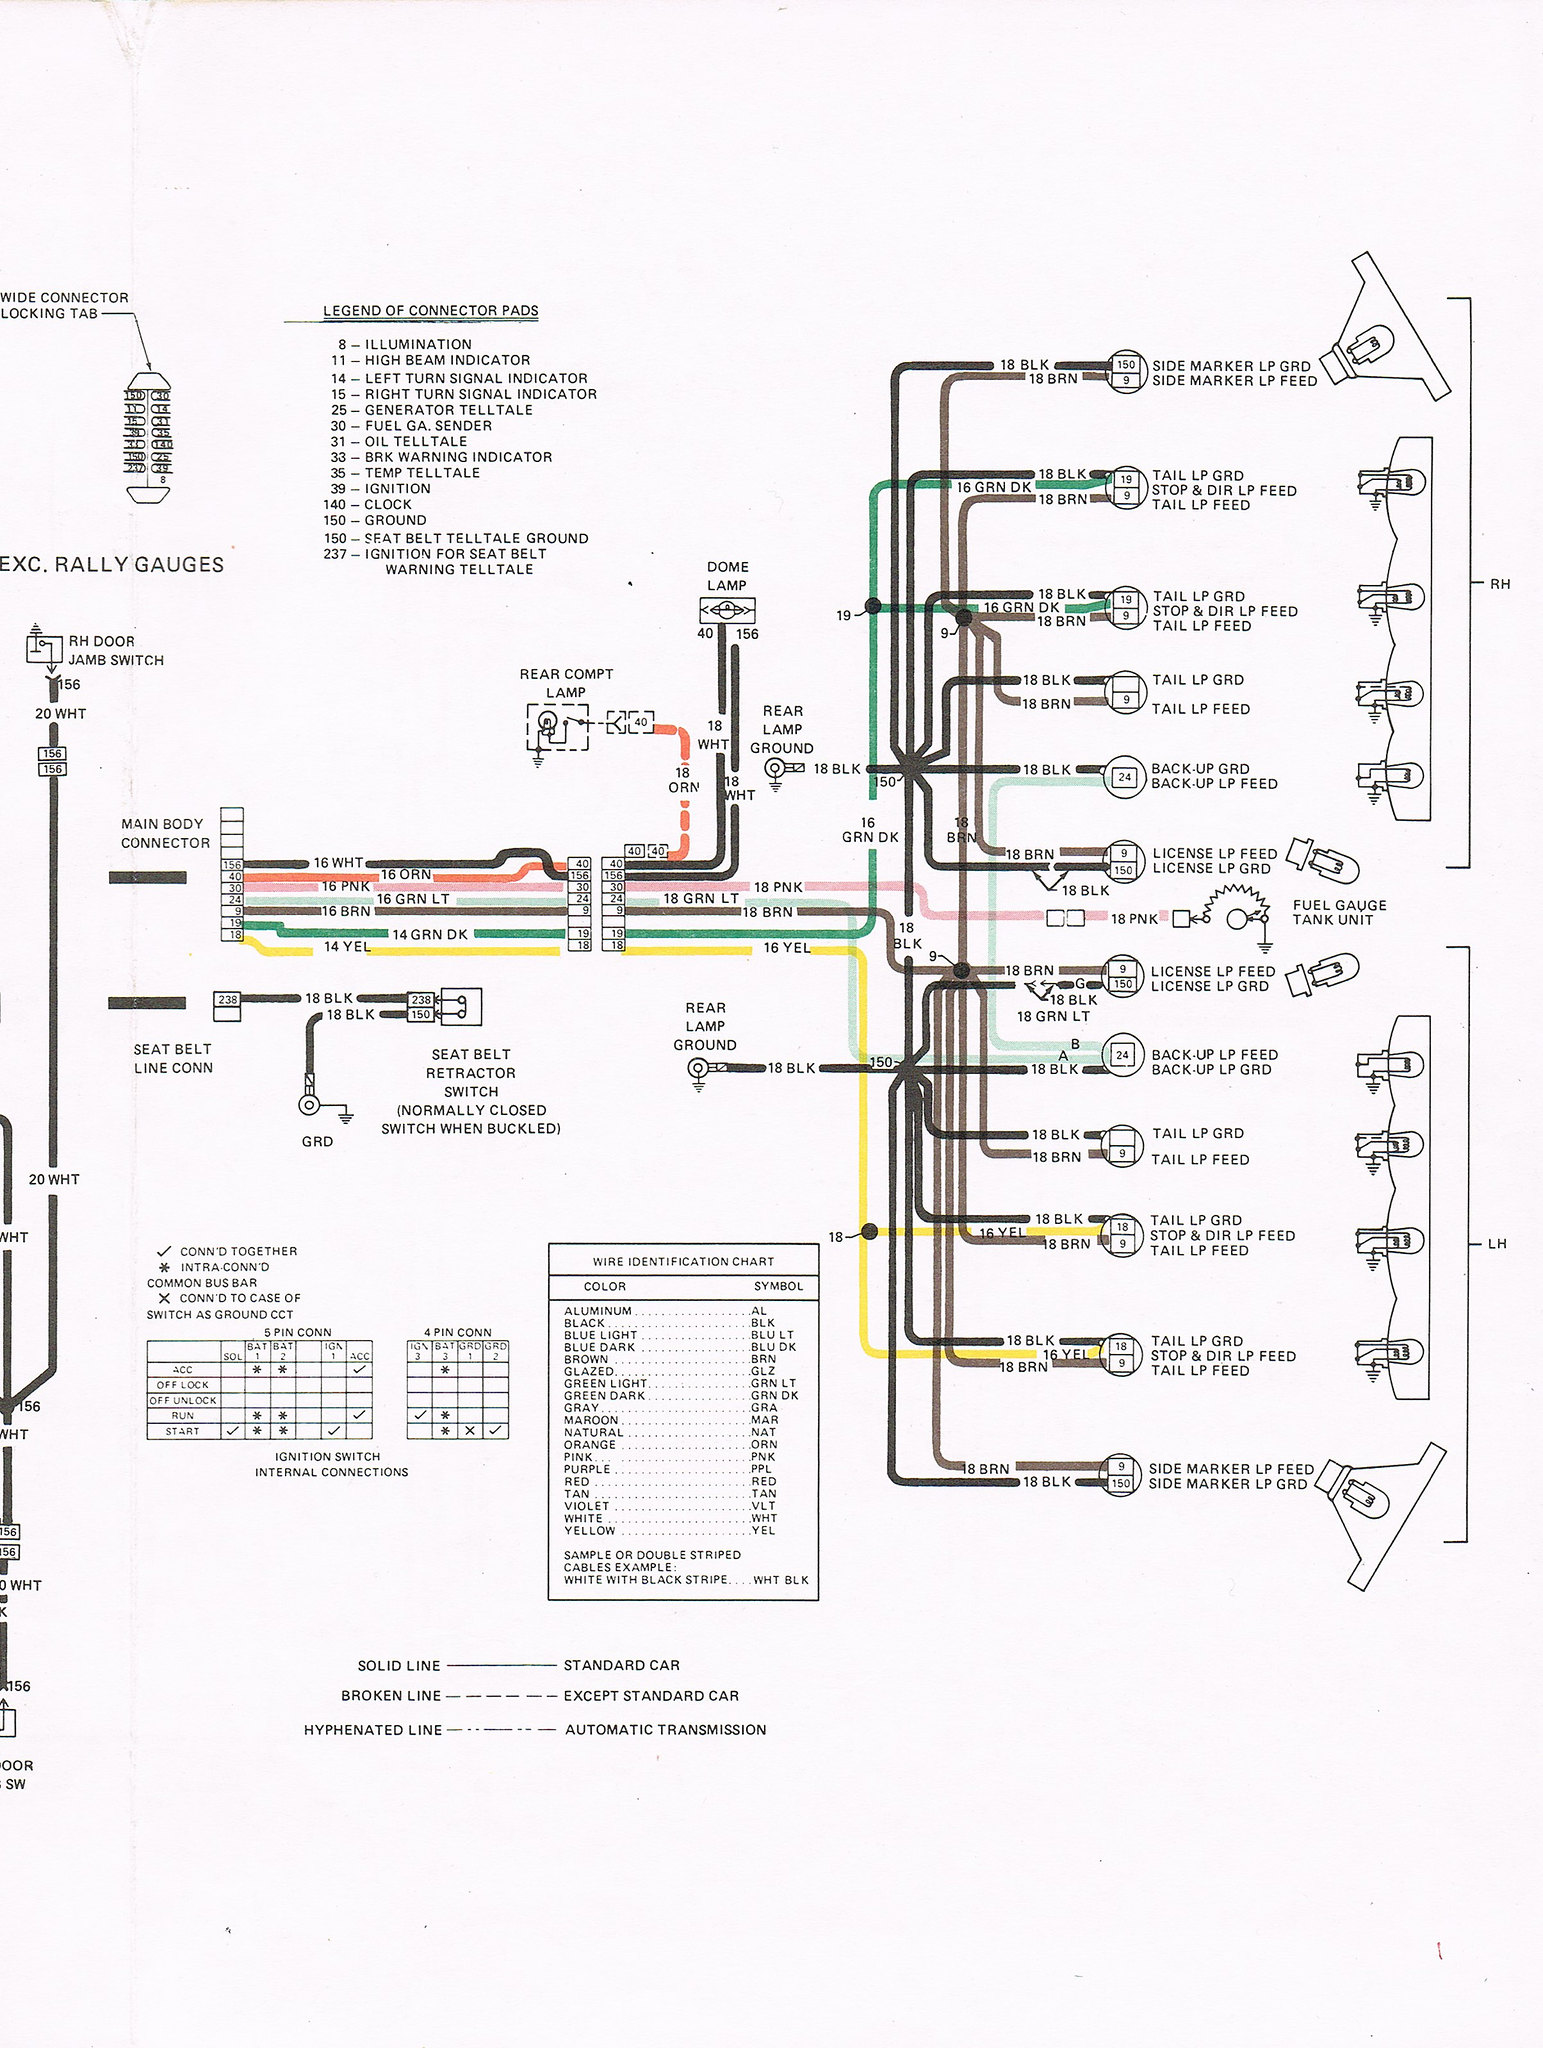 Diagram 1967 Pontiac Tachometer Wiring Diagram Full Version Hd Quality Wiring Diagram Instadiagram Holofitness Fr